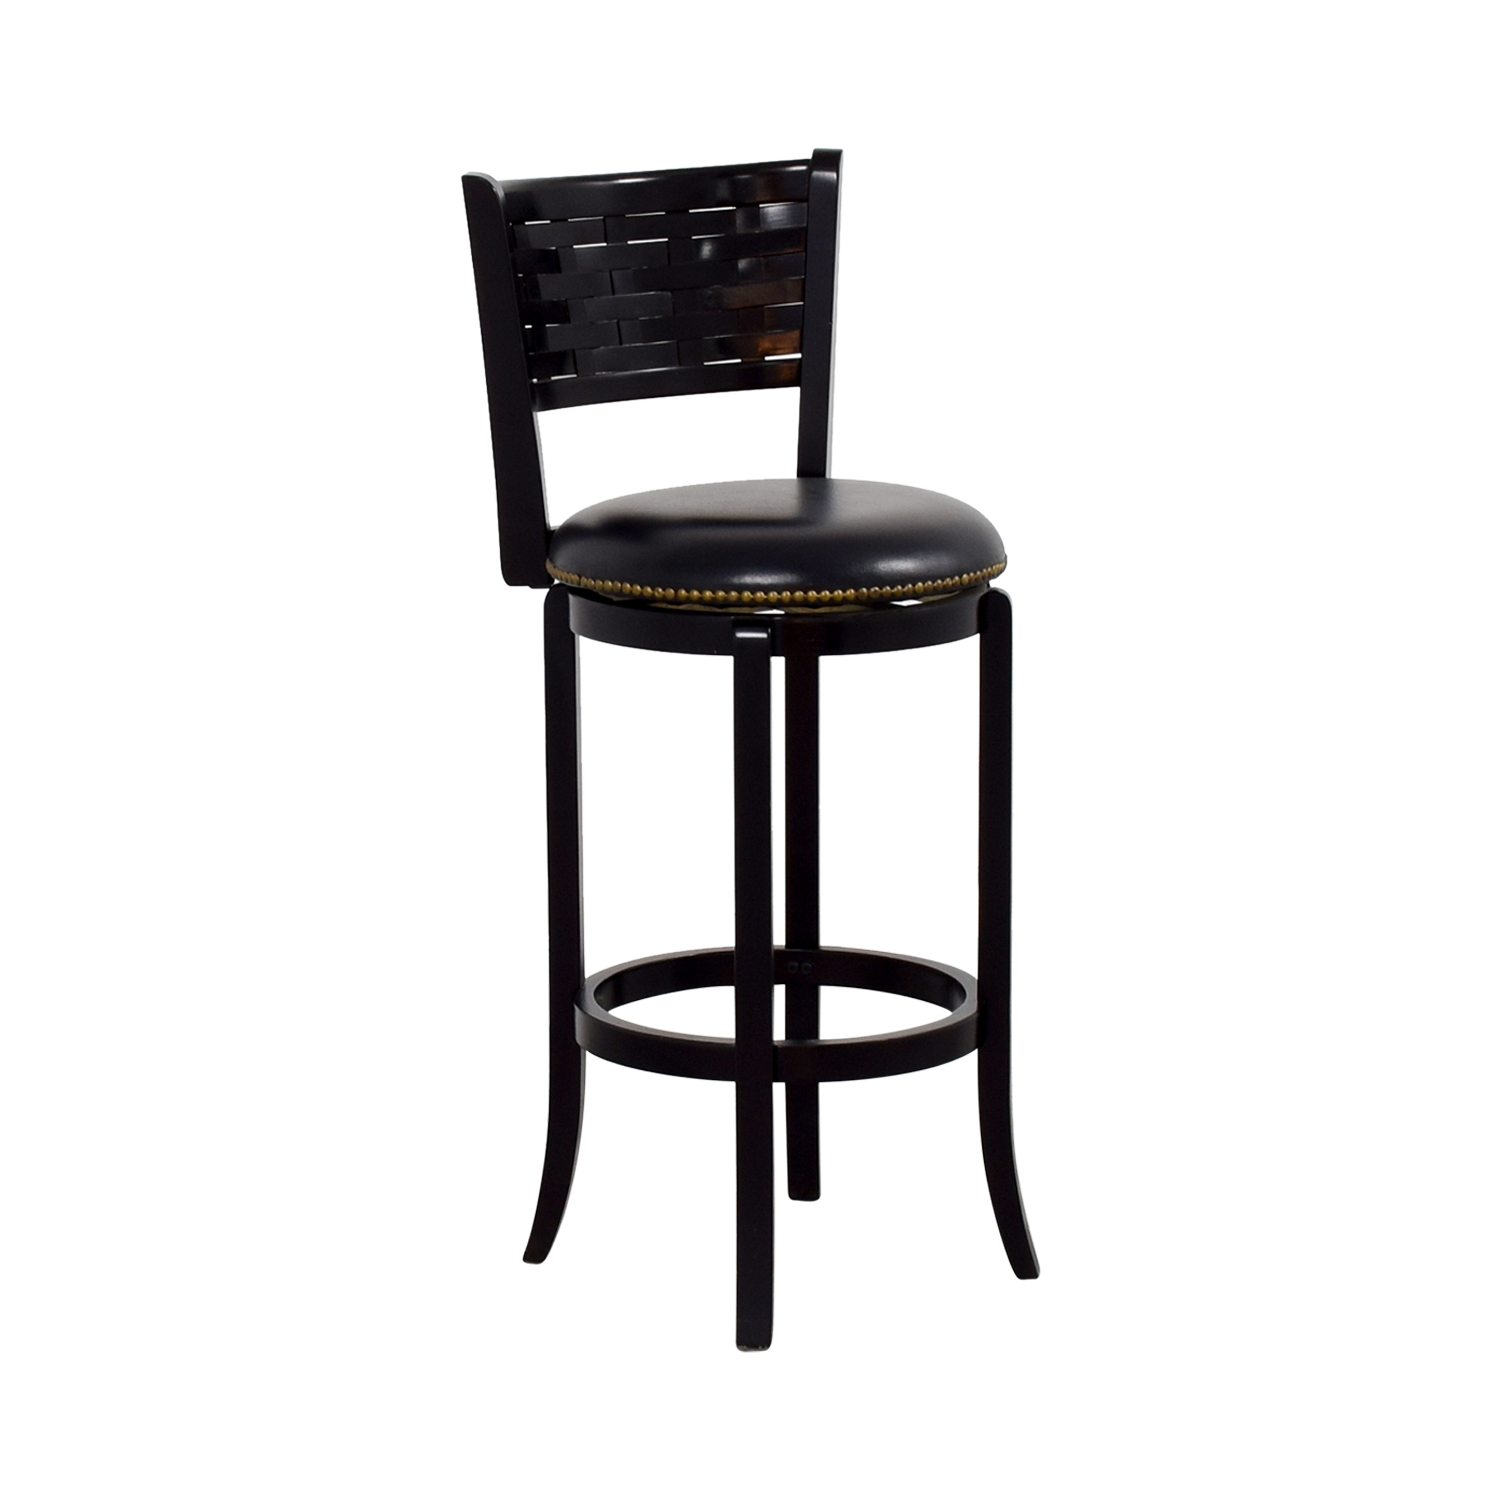 Black Leather with Nailhead Swivel Bar Stool second hand